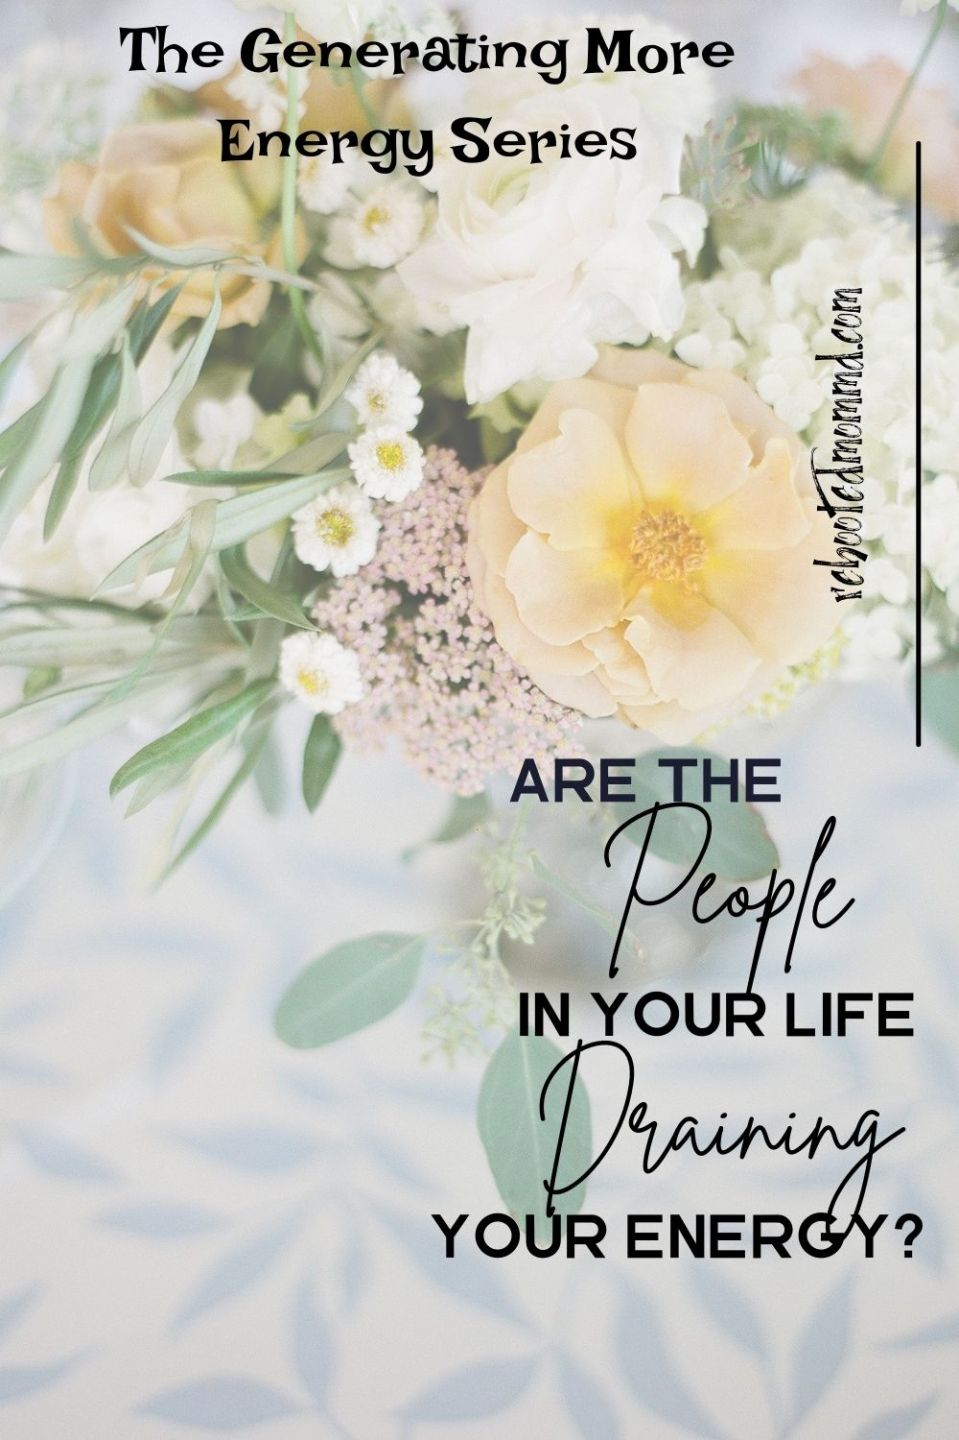 Are the People in your Life Draining your Energy?